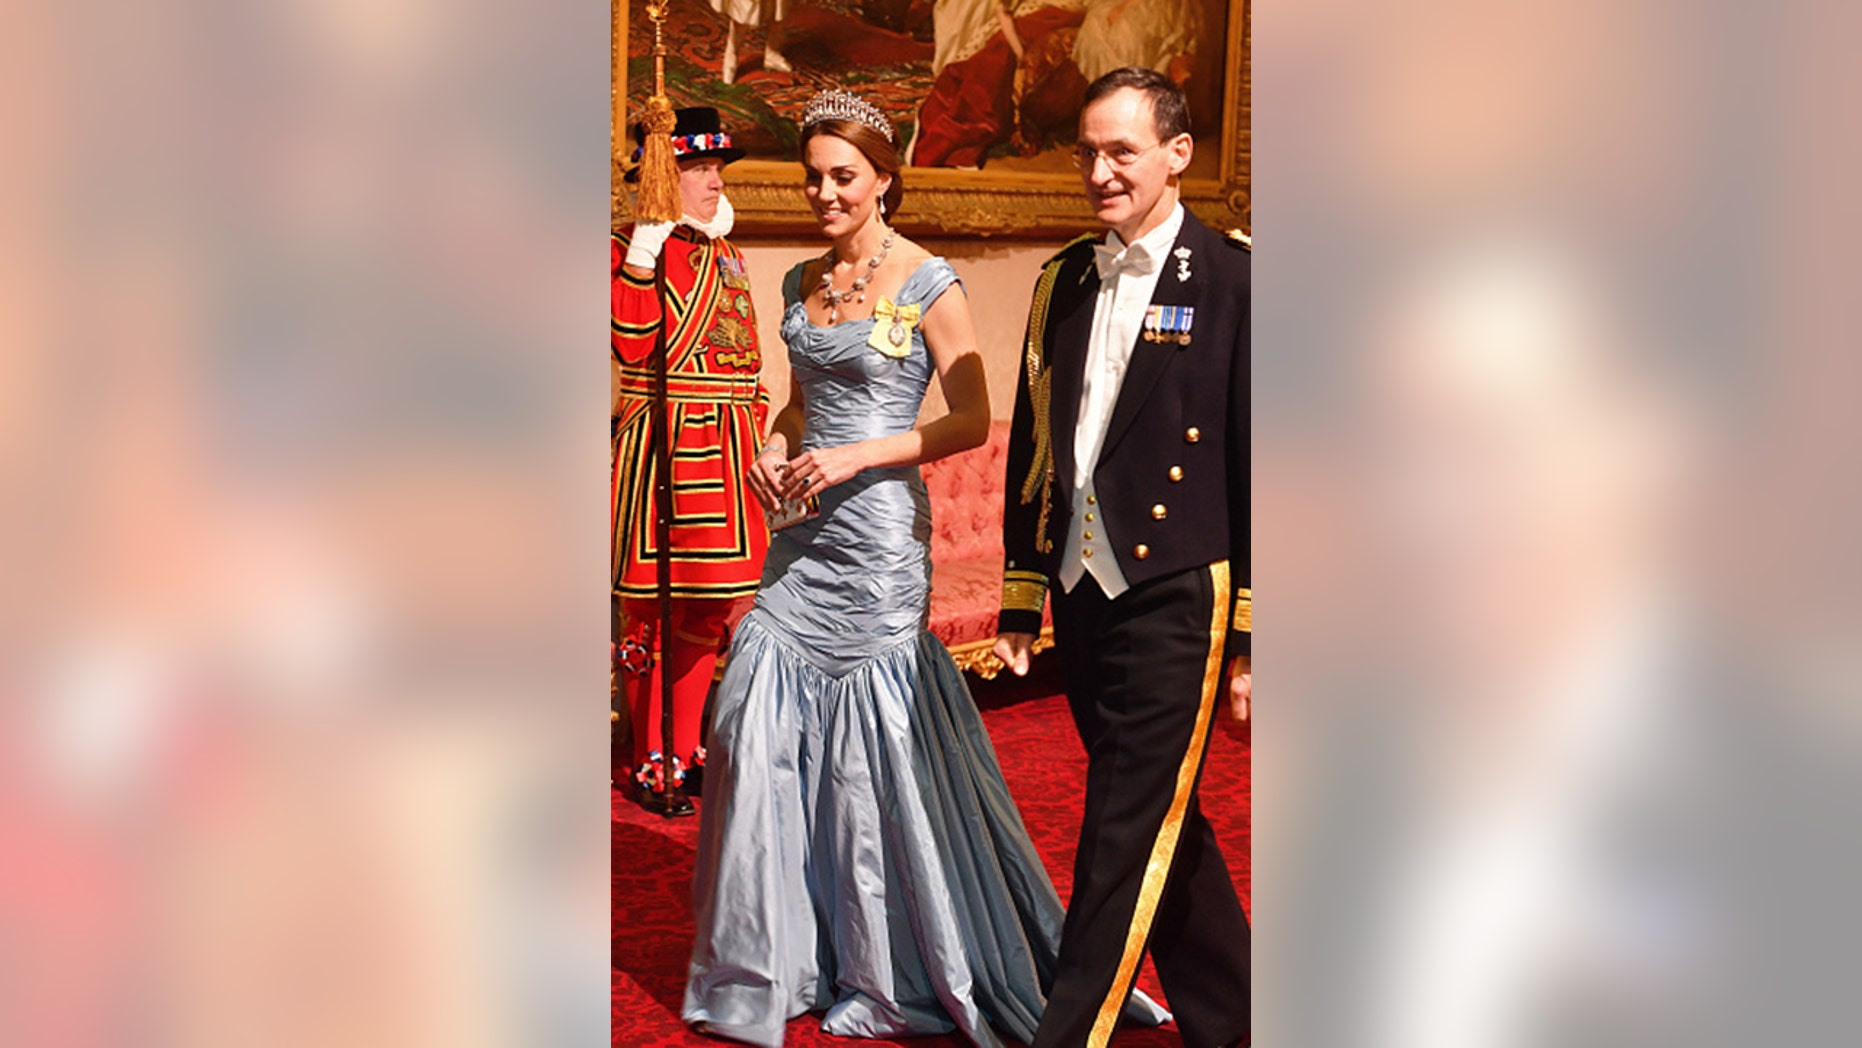 Catherine, Duchess of Cambridge was slammed on social media for her evening gown during a state banquet at Buckingham Palace on Oct. 23, 2018. (John Stillwell - WPA Pool/Getty Images)